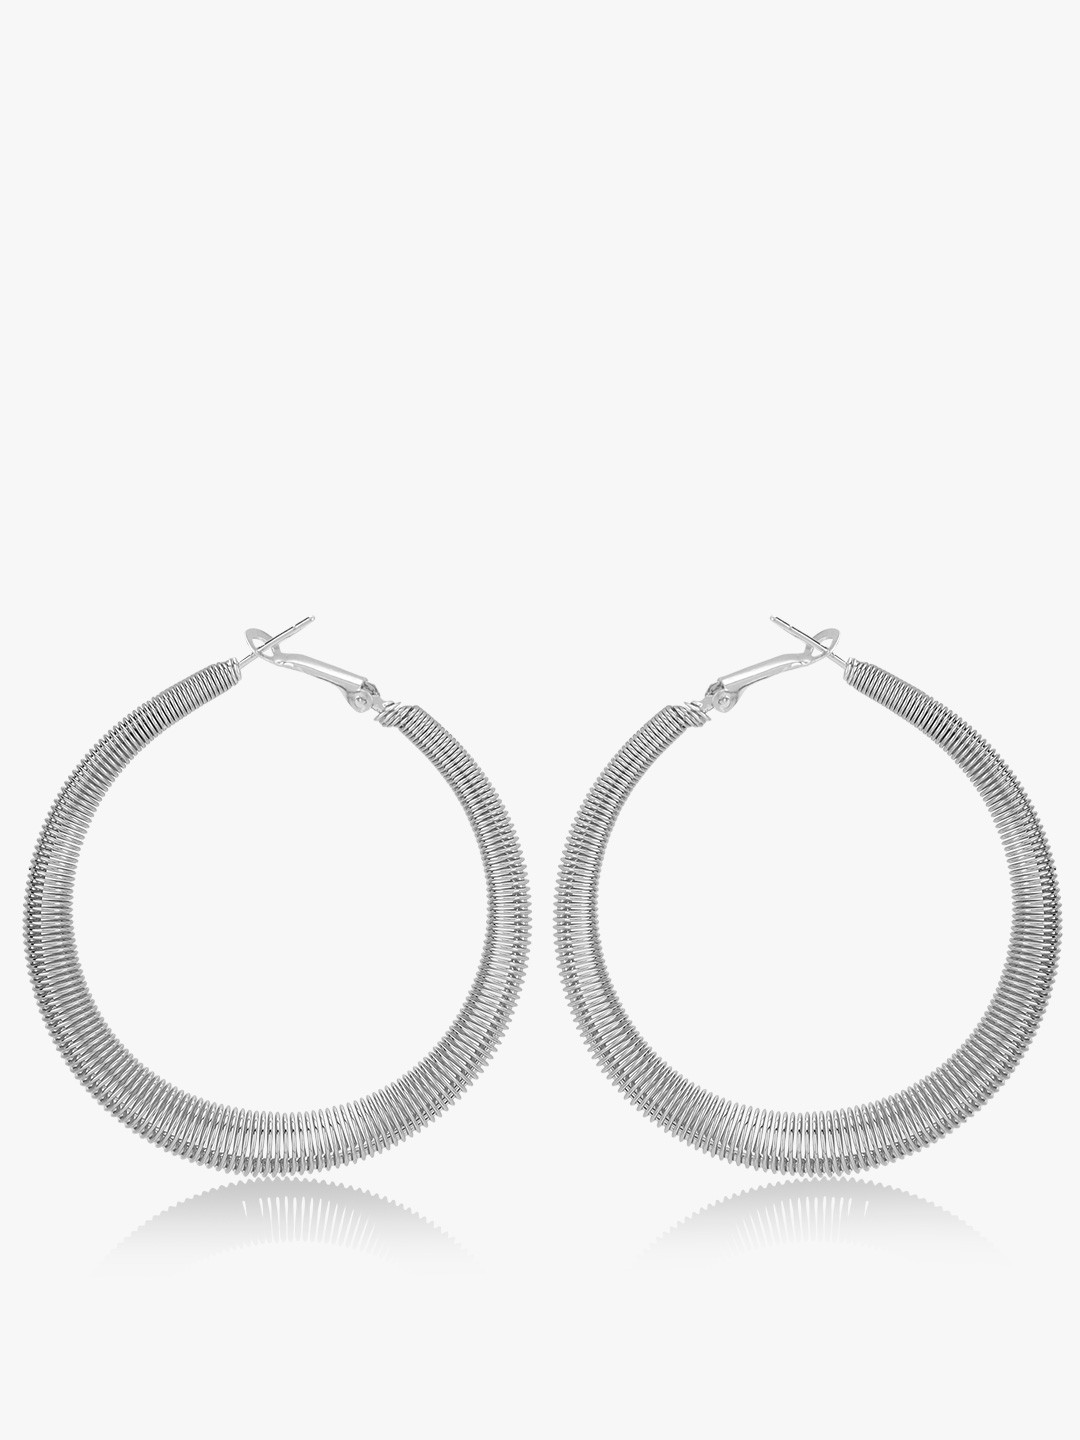 Style Fiesta Silver Hoops Earrings 1